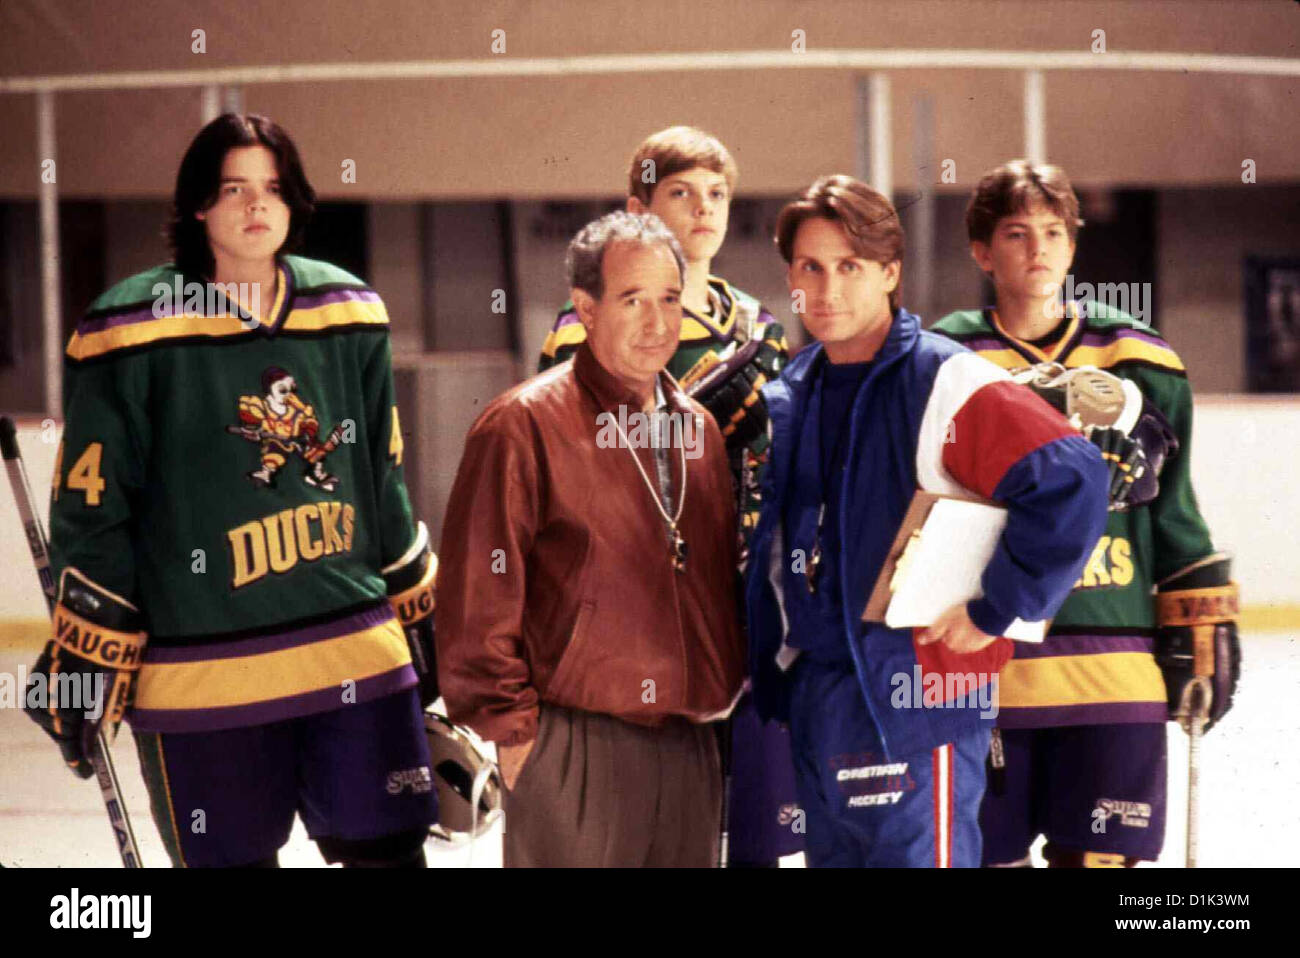 Mighty Ducks Ii - Das Superteam Kehrt Zurueck  D2: Mighty Ducks  Michael Tucker, Emilio Estevez Was Gordon (Emilio - Stock Image